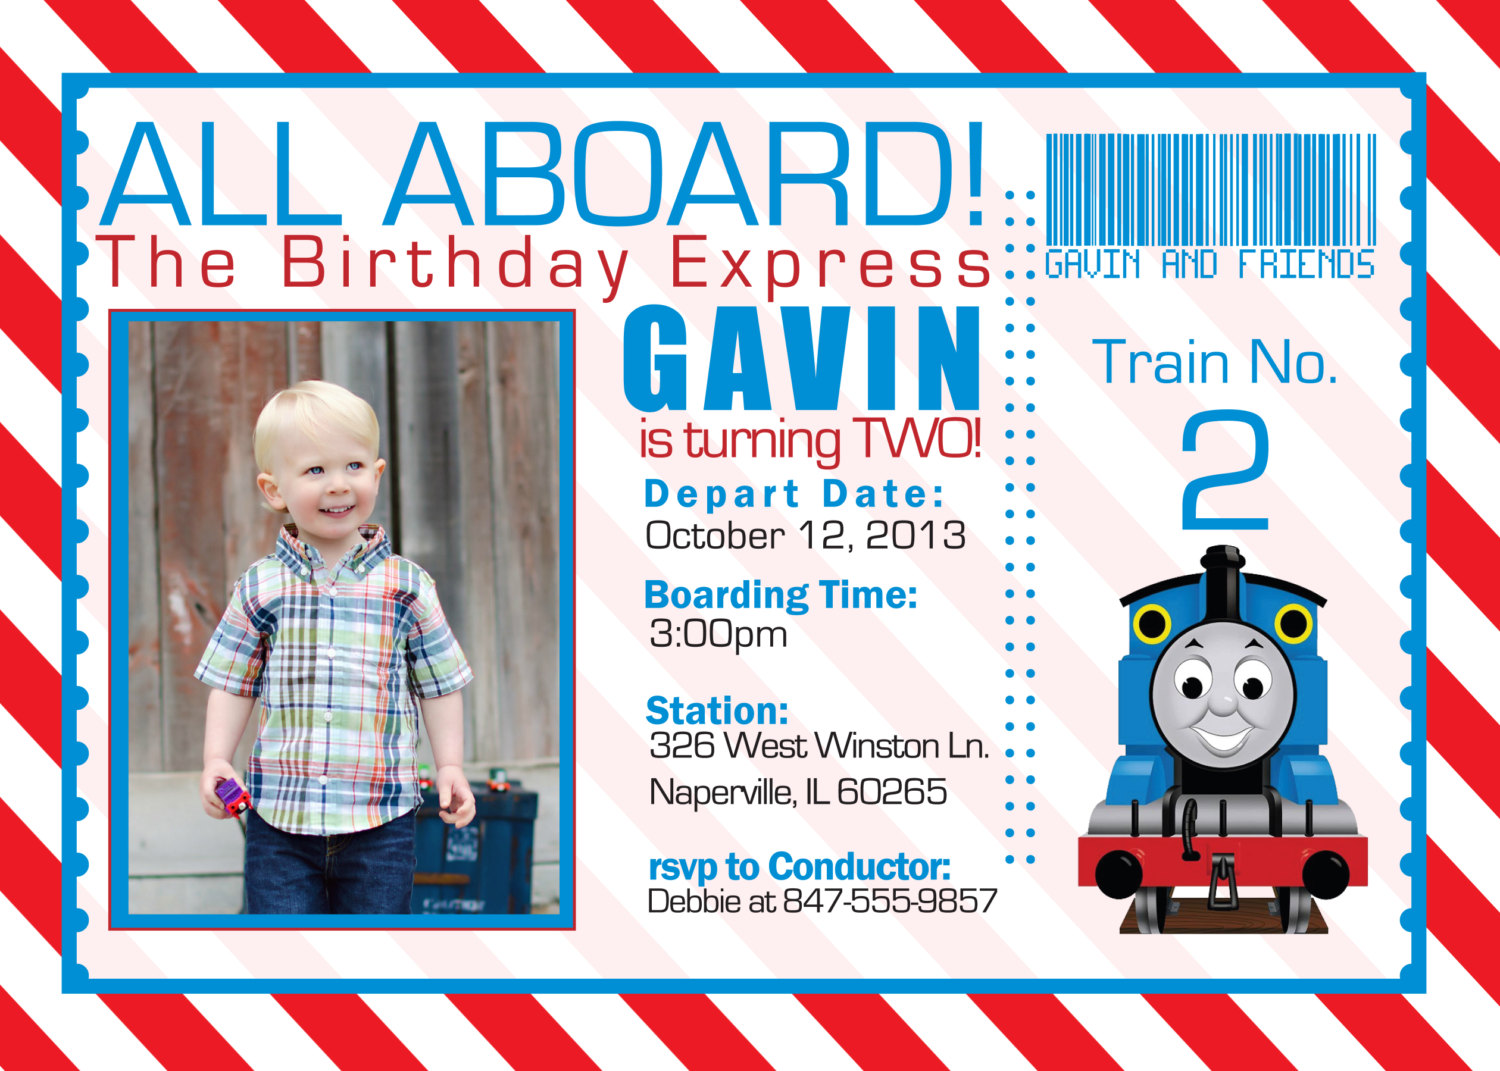 thomas and friends birthday invitation templates ; thomas-the-train-birthday-invitations-for-prepossessing-Birthday-Invitation-Card-invitation-card-design-ornaments-creation-2